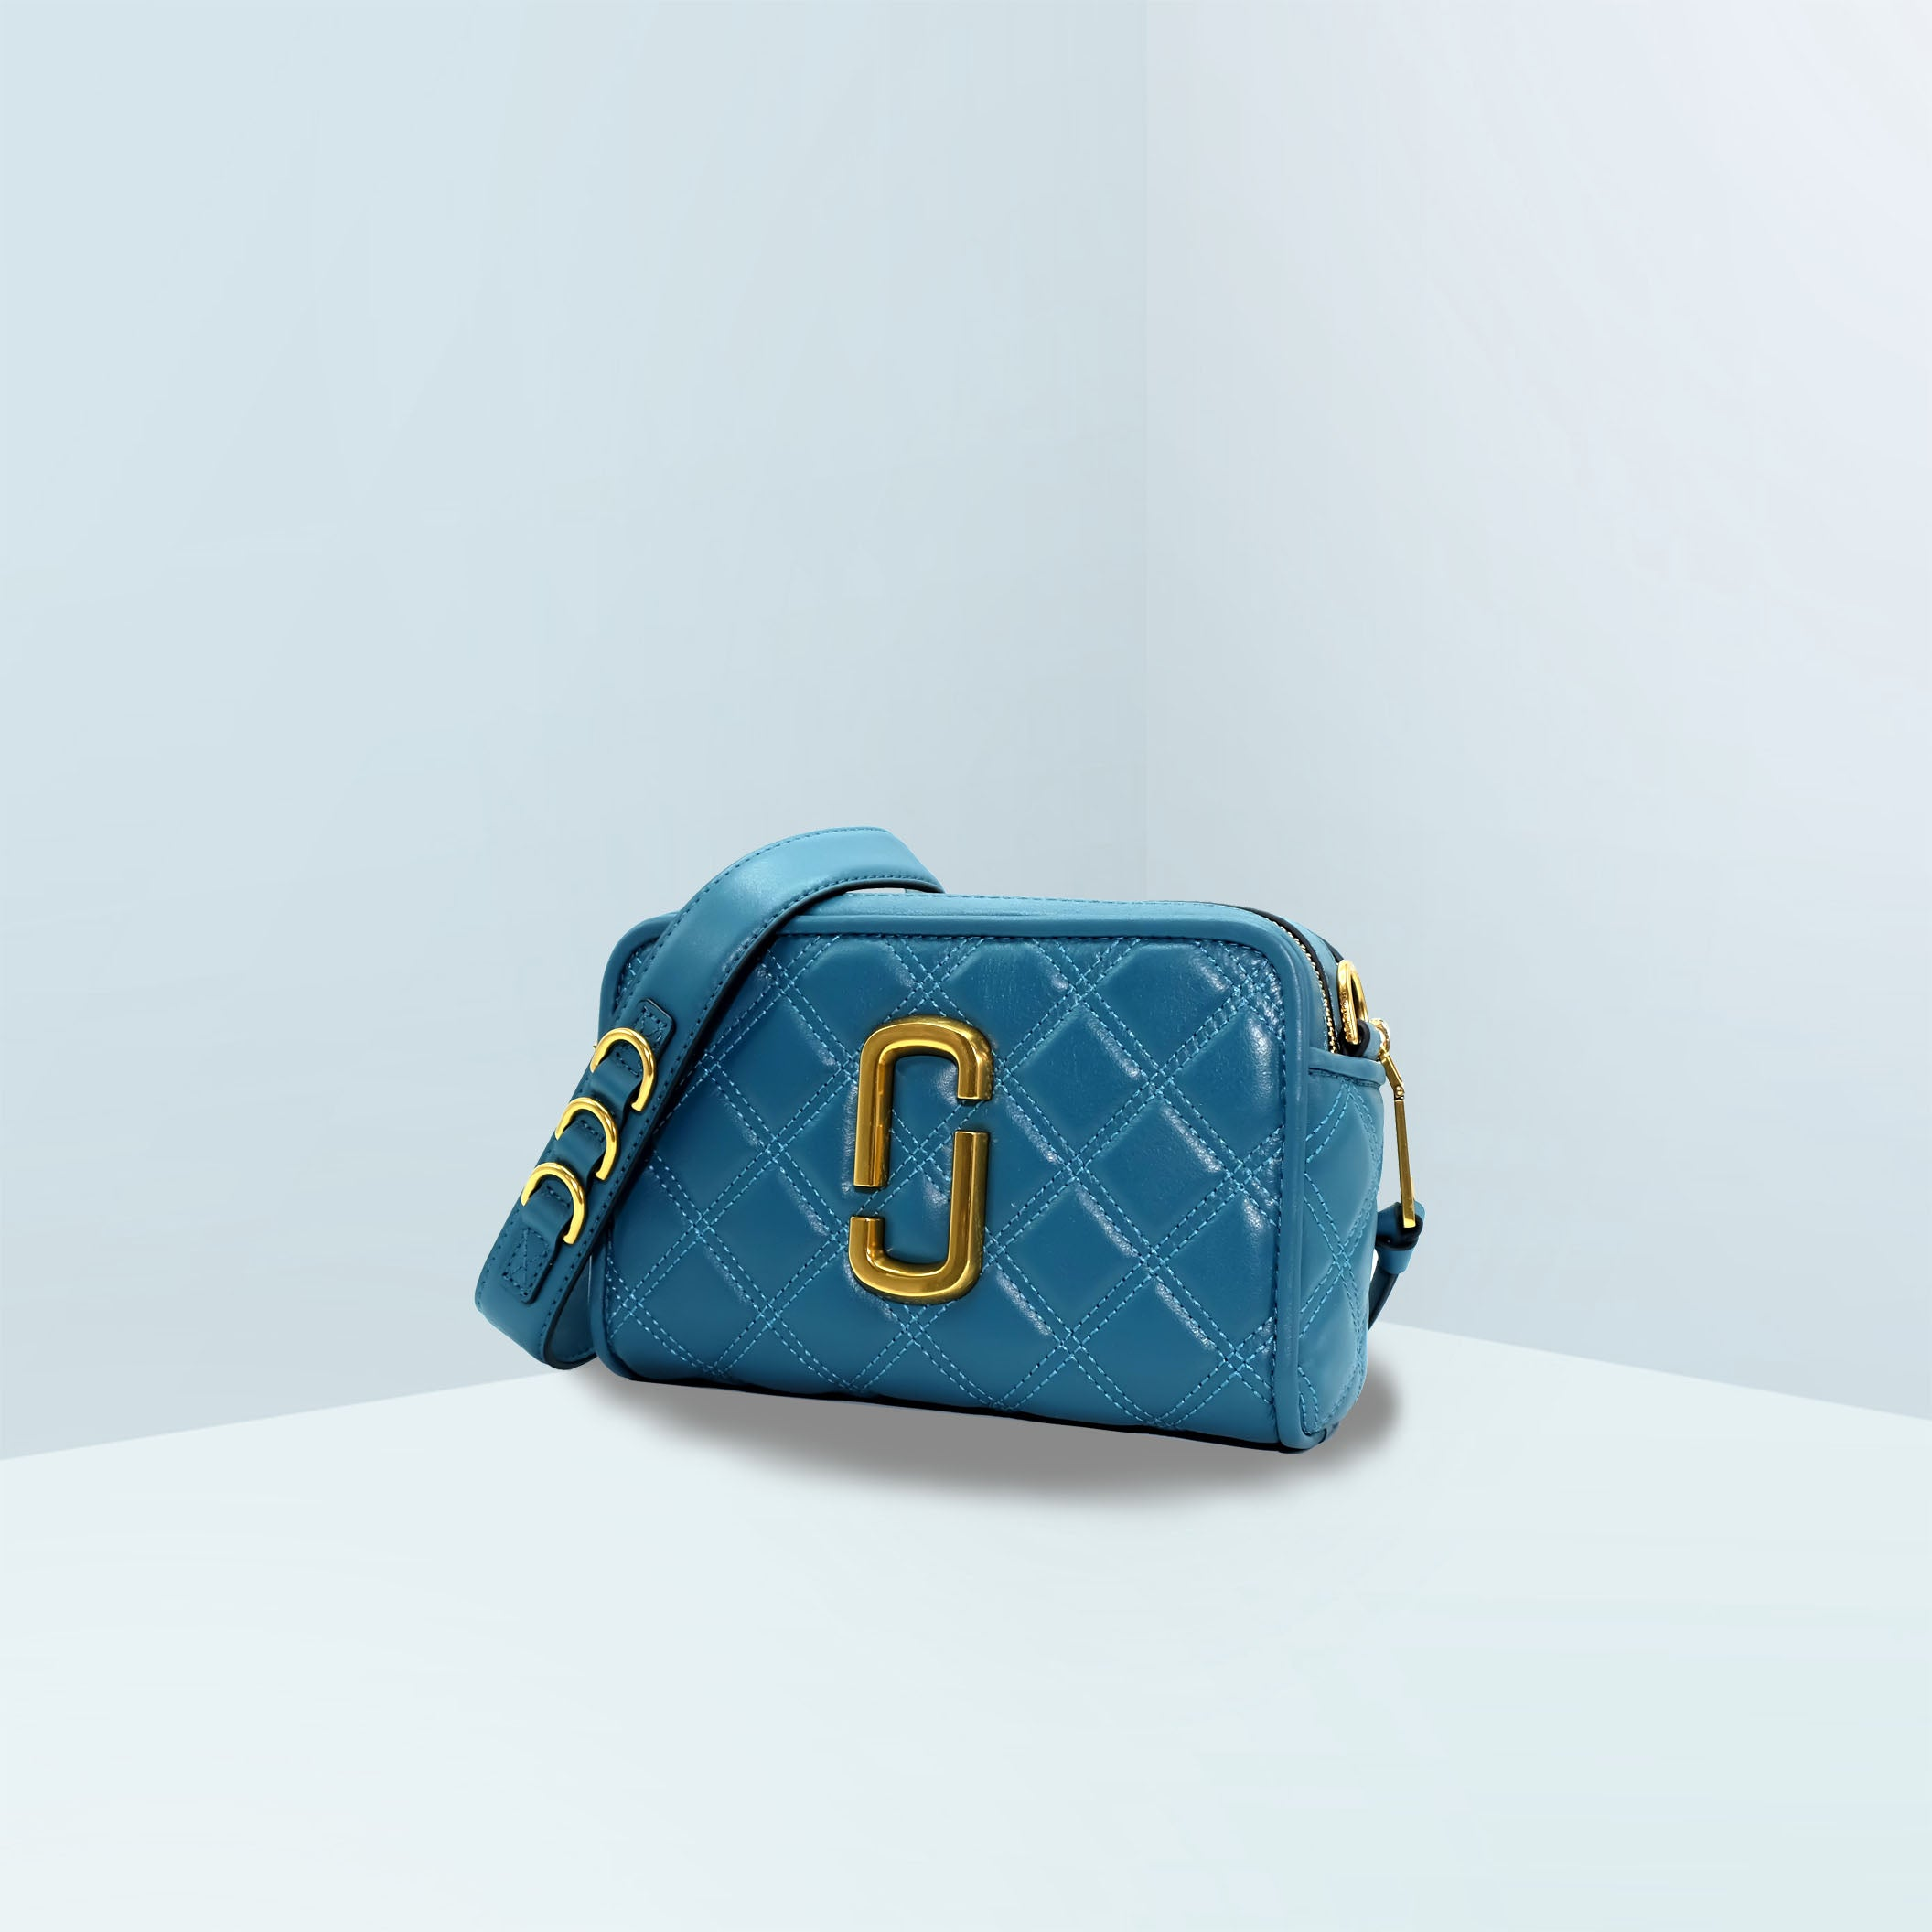 The Quilted Softshot 21 Crossbody Bag